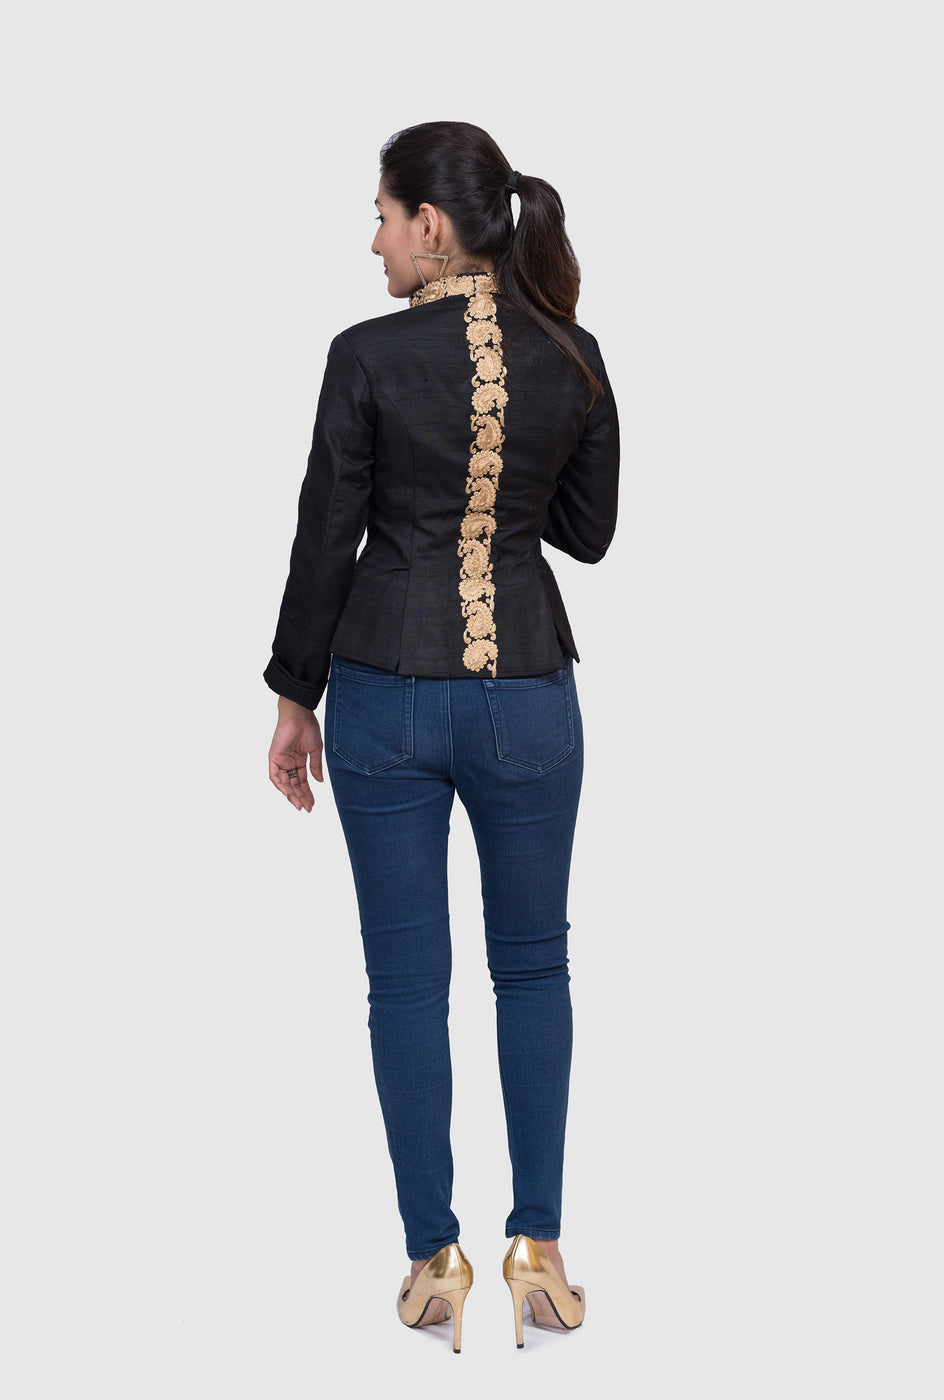 Inaaya black embroidered jacket